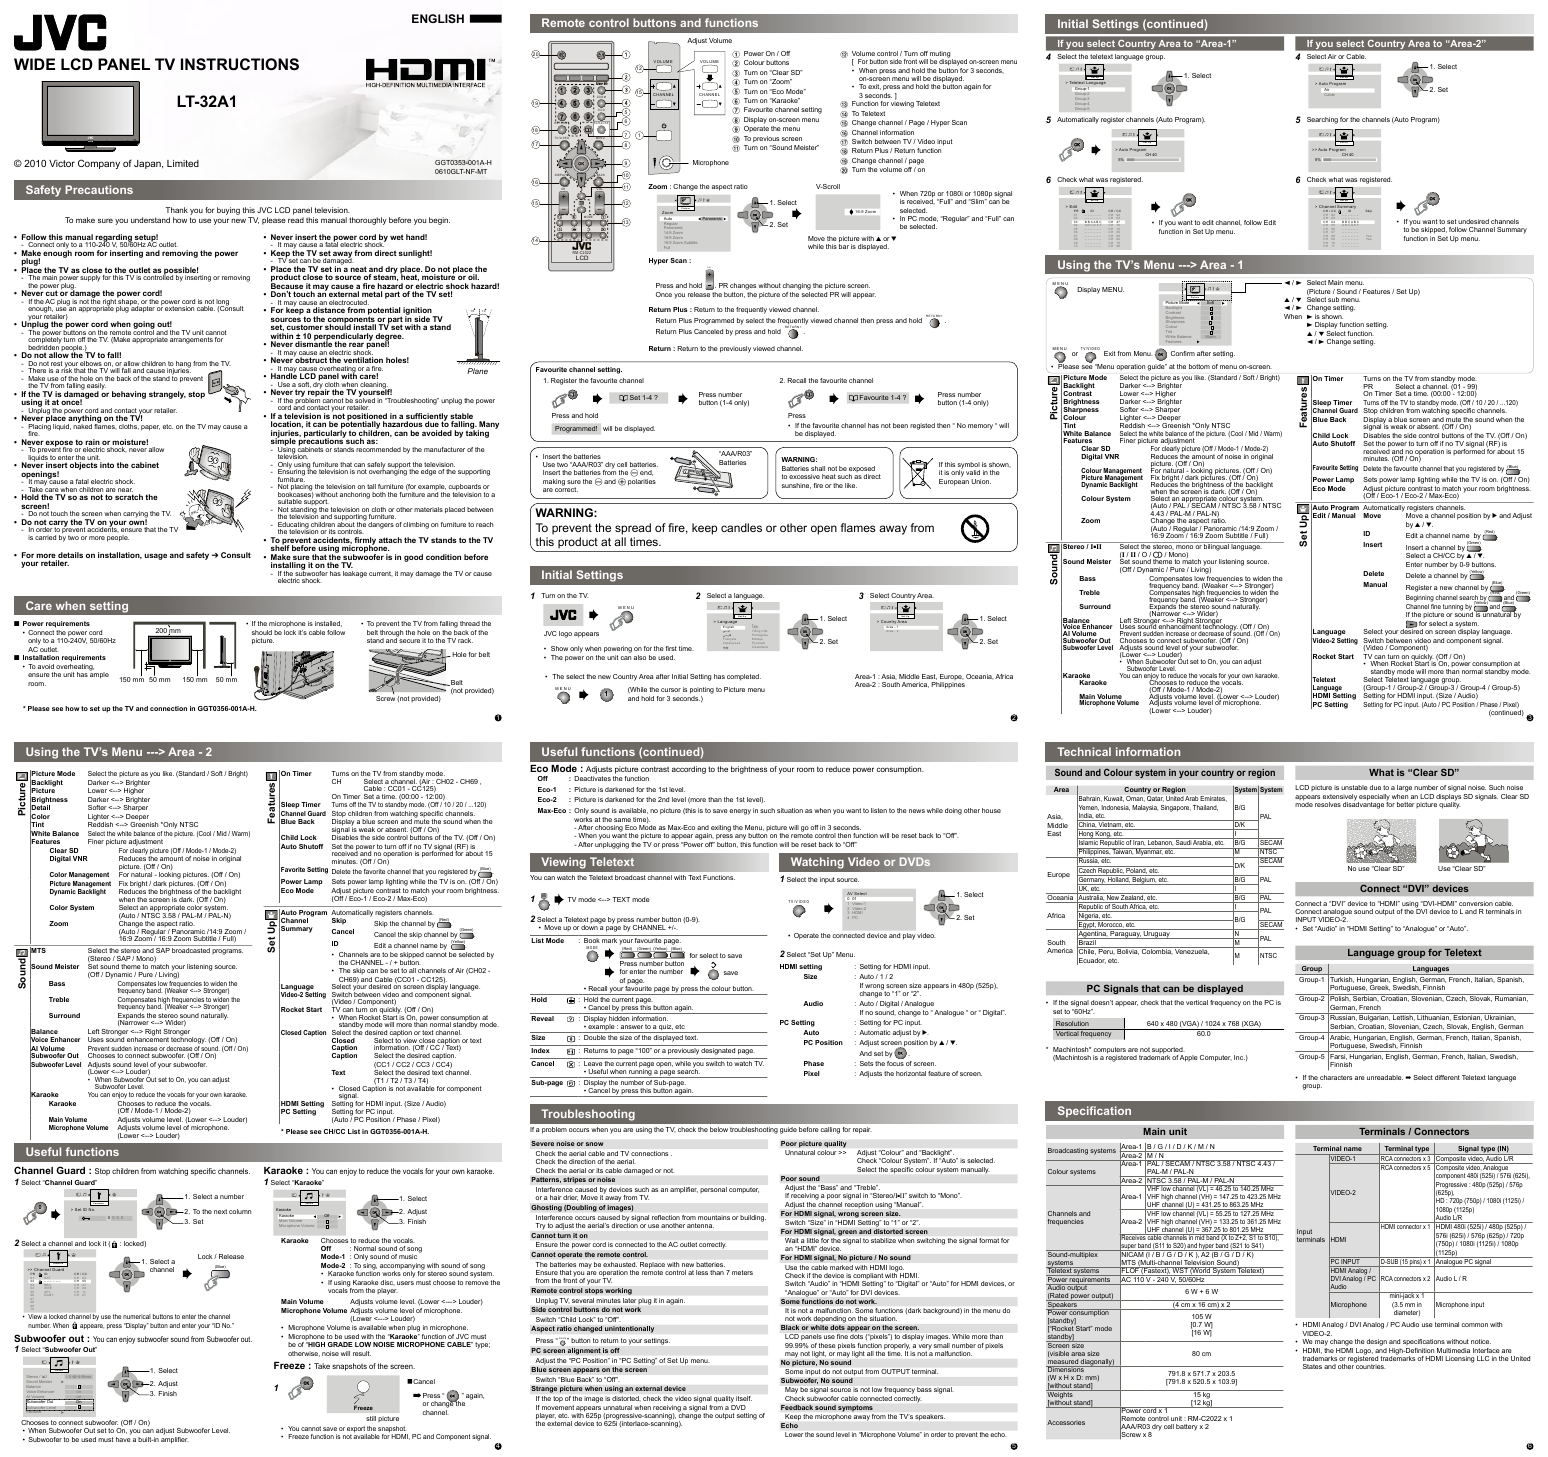 search jvc jvc lcd flat panel tv 4 user manuals manualsonline com rh tv manualsonline com JVC Everio Camcorder User Manual jvc everio instruction manual